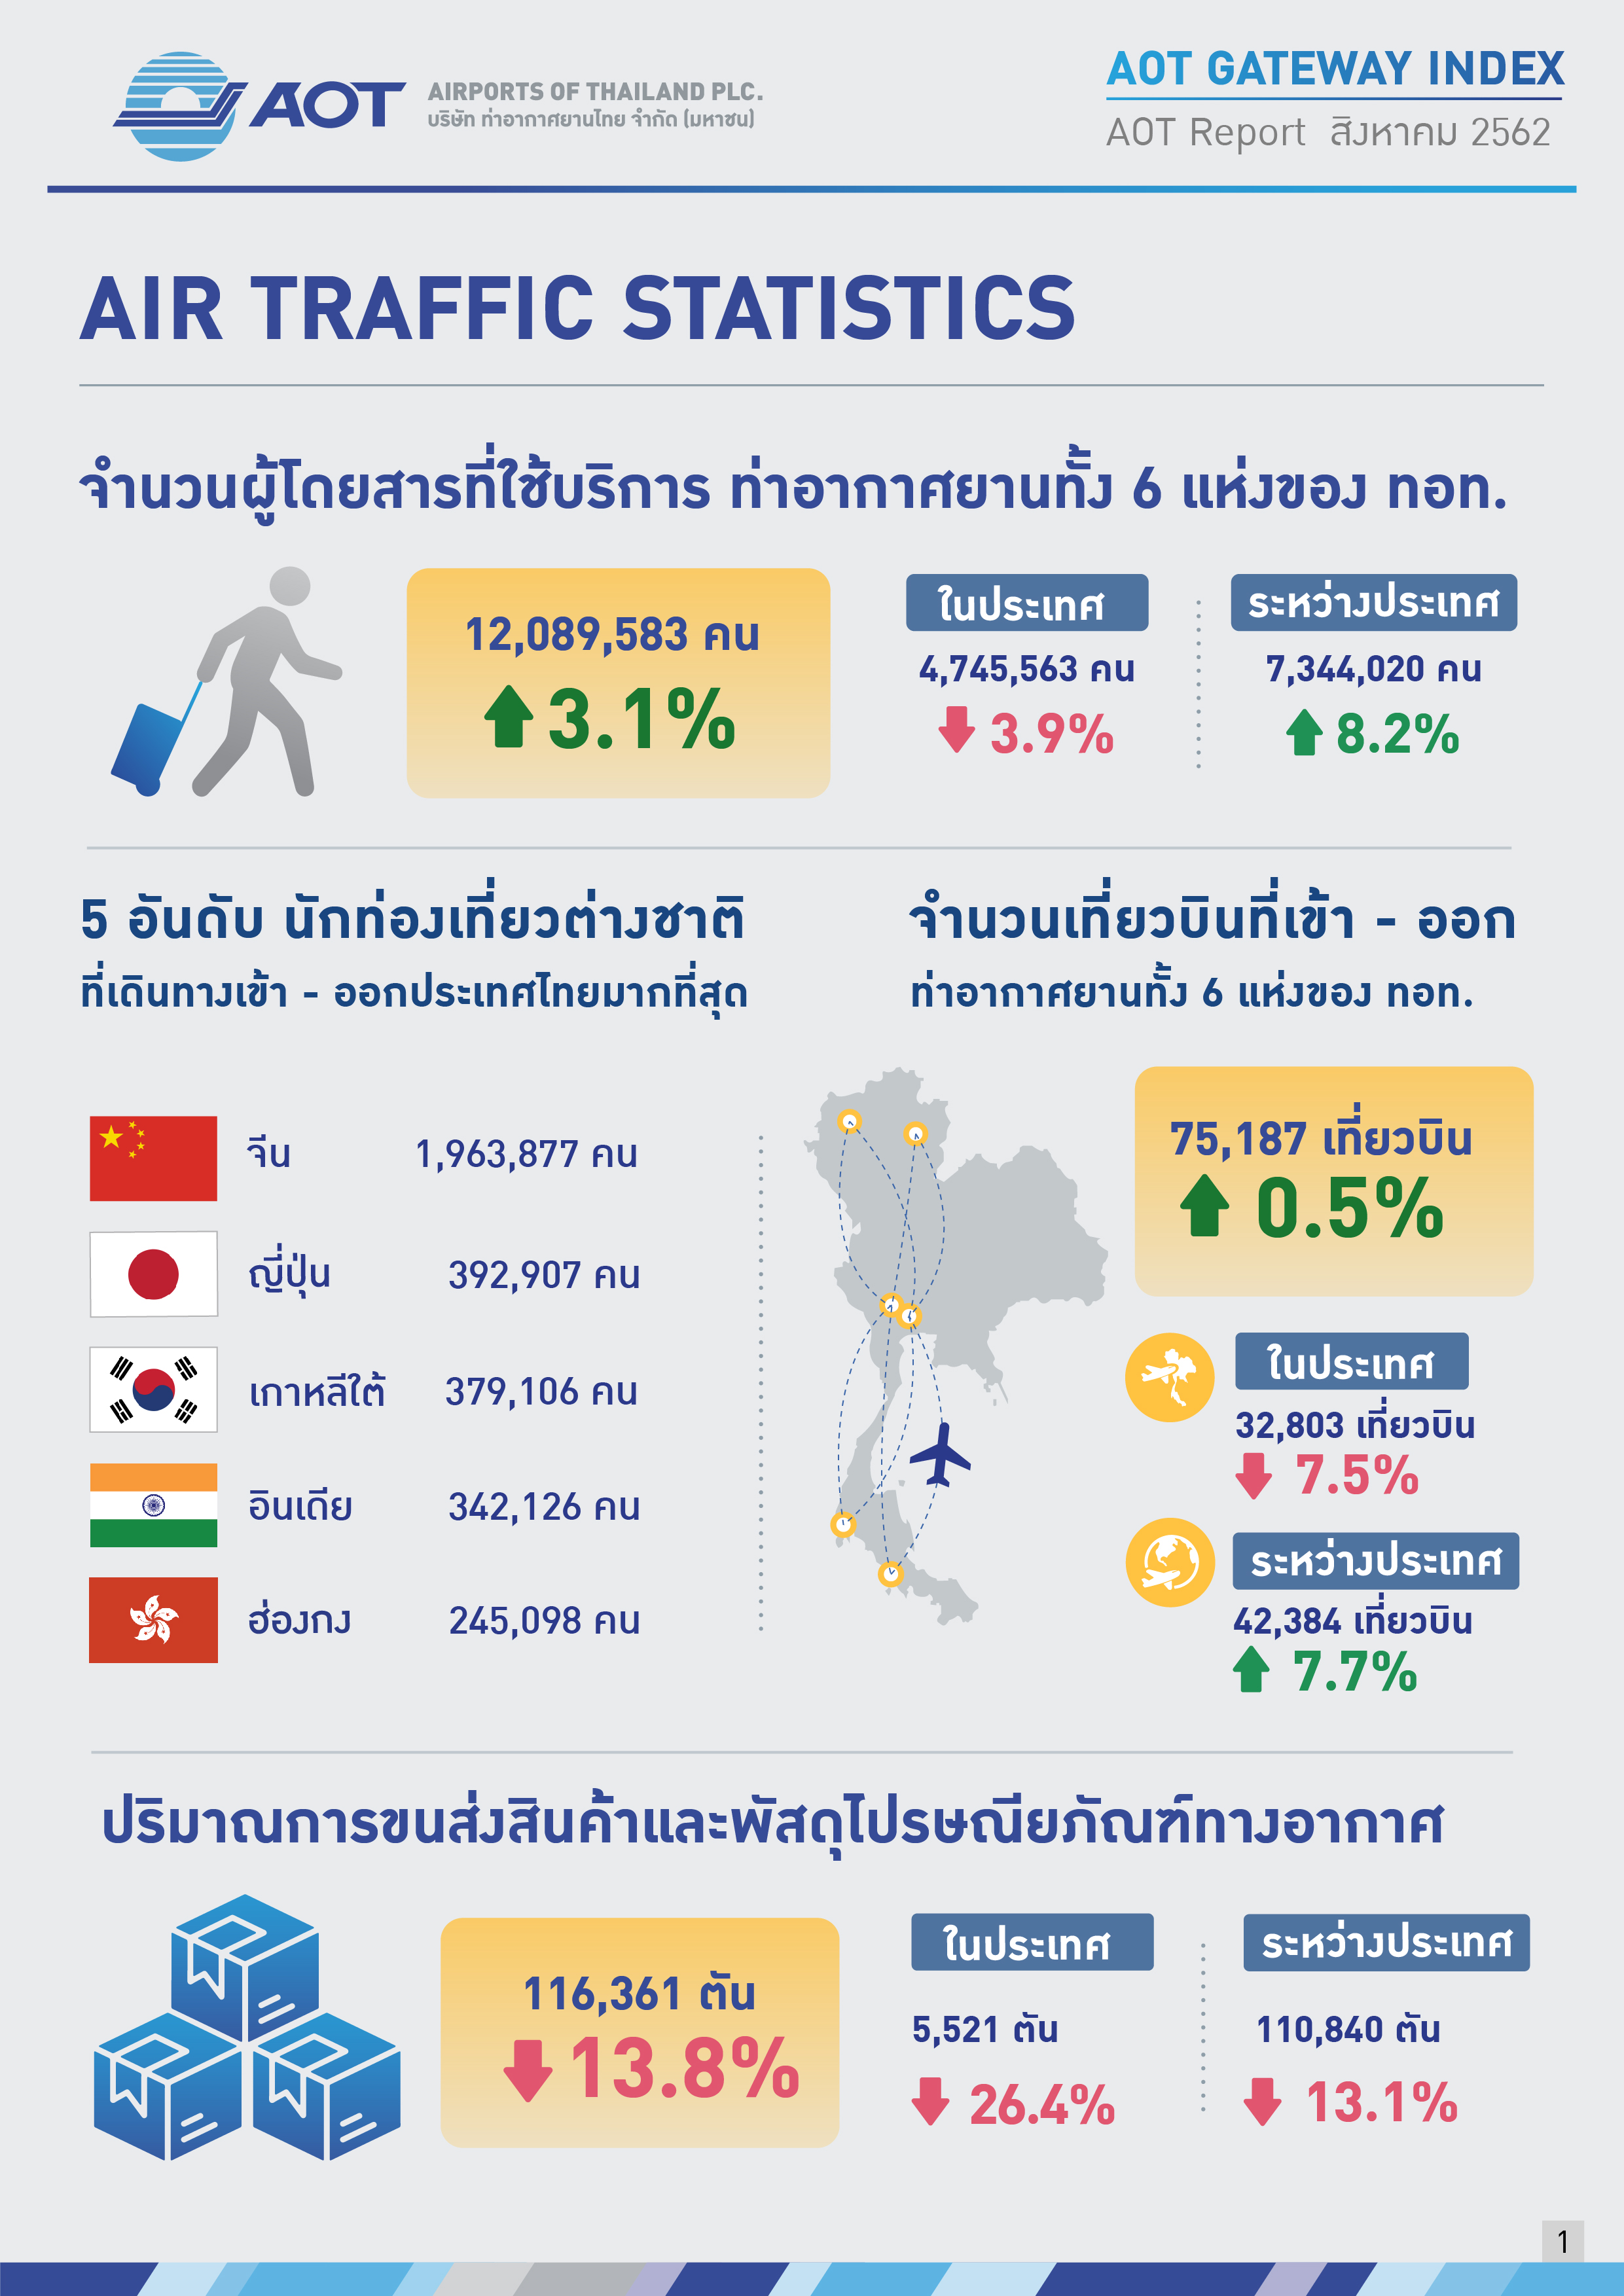 AOTcentent2019_Index 09_AOT เคียงคู่สังคม_V7_20191031_Page01